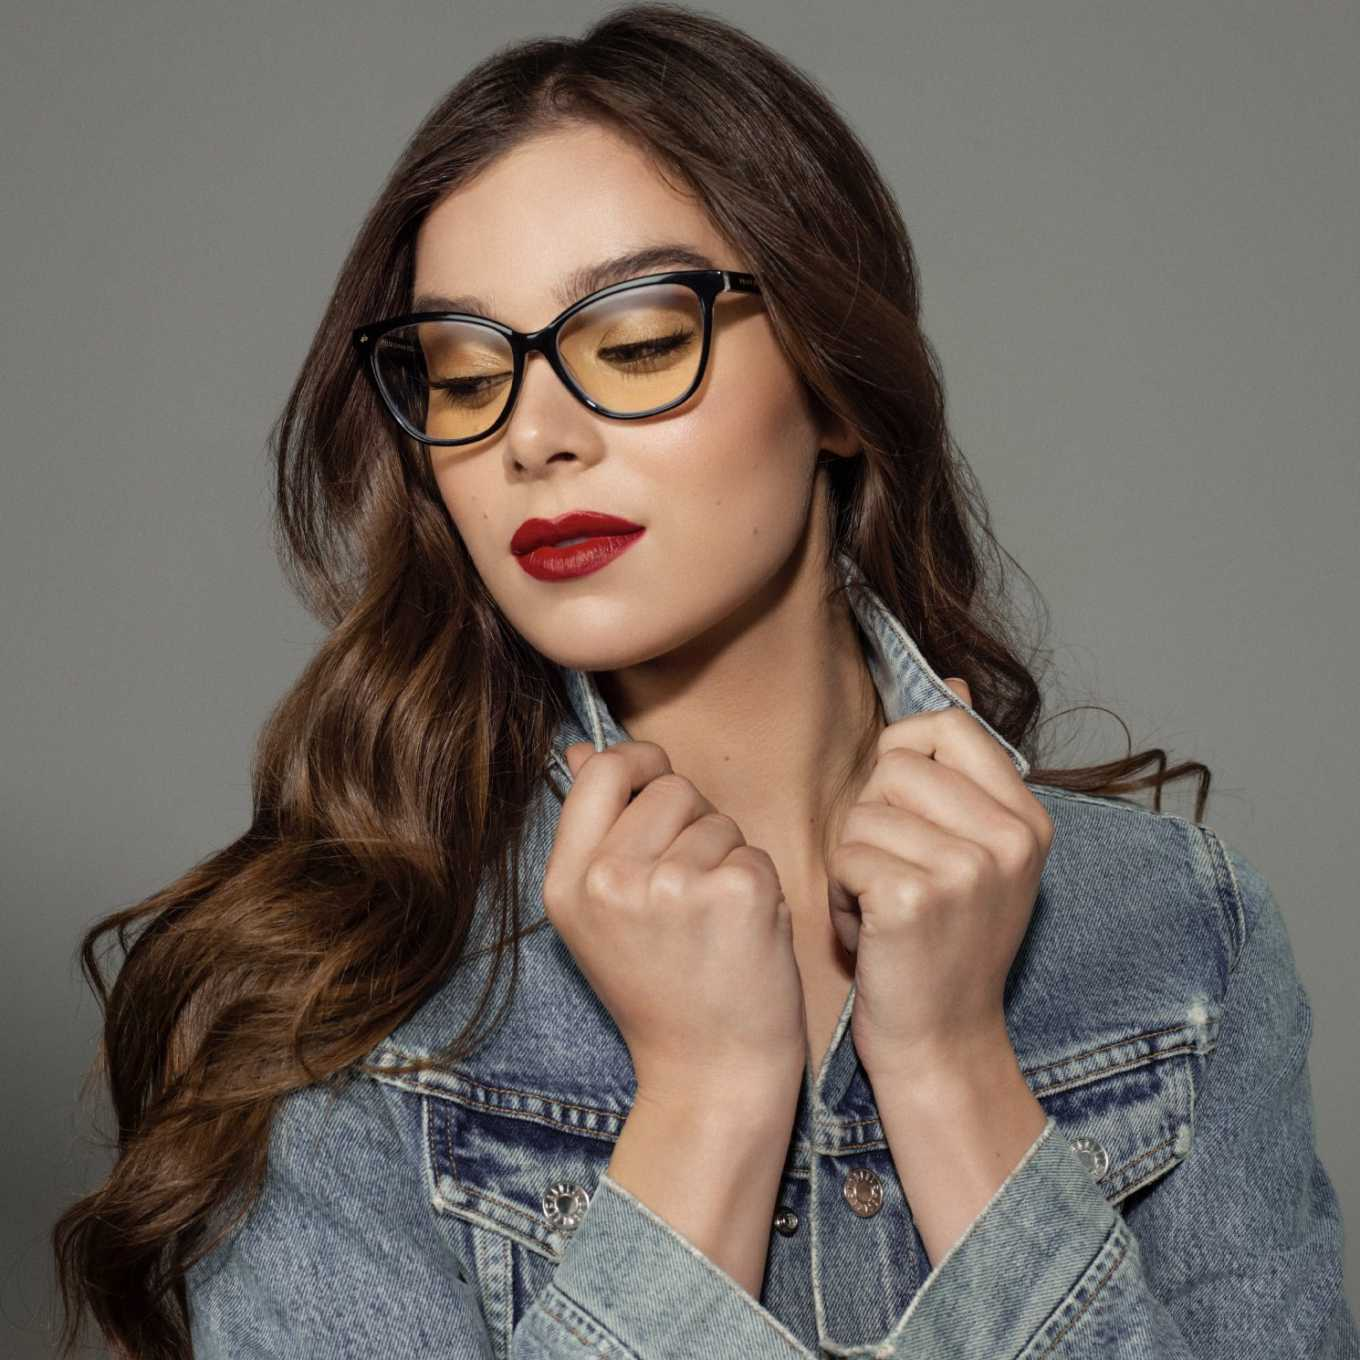 Hailee Steinfeld Latest Pictures Photoshoots News And Hot Videos Tellyupdates Tv The haileesteinfeld community on reddit. hailee steinfeld latest pictures